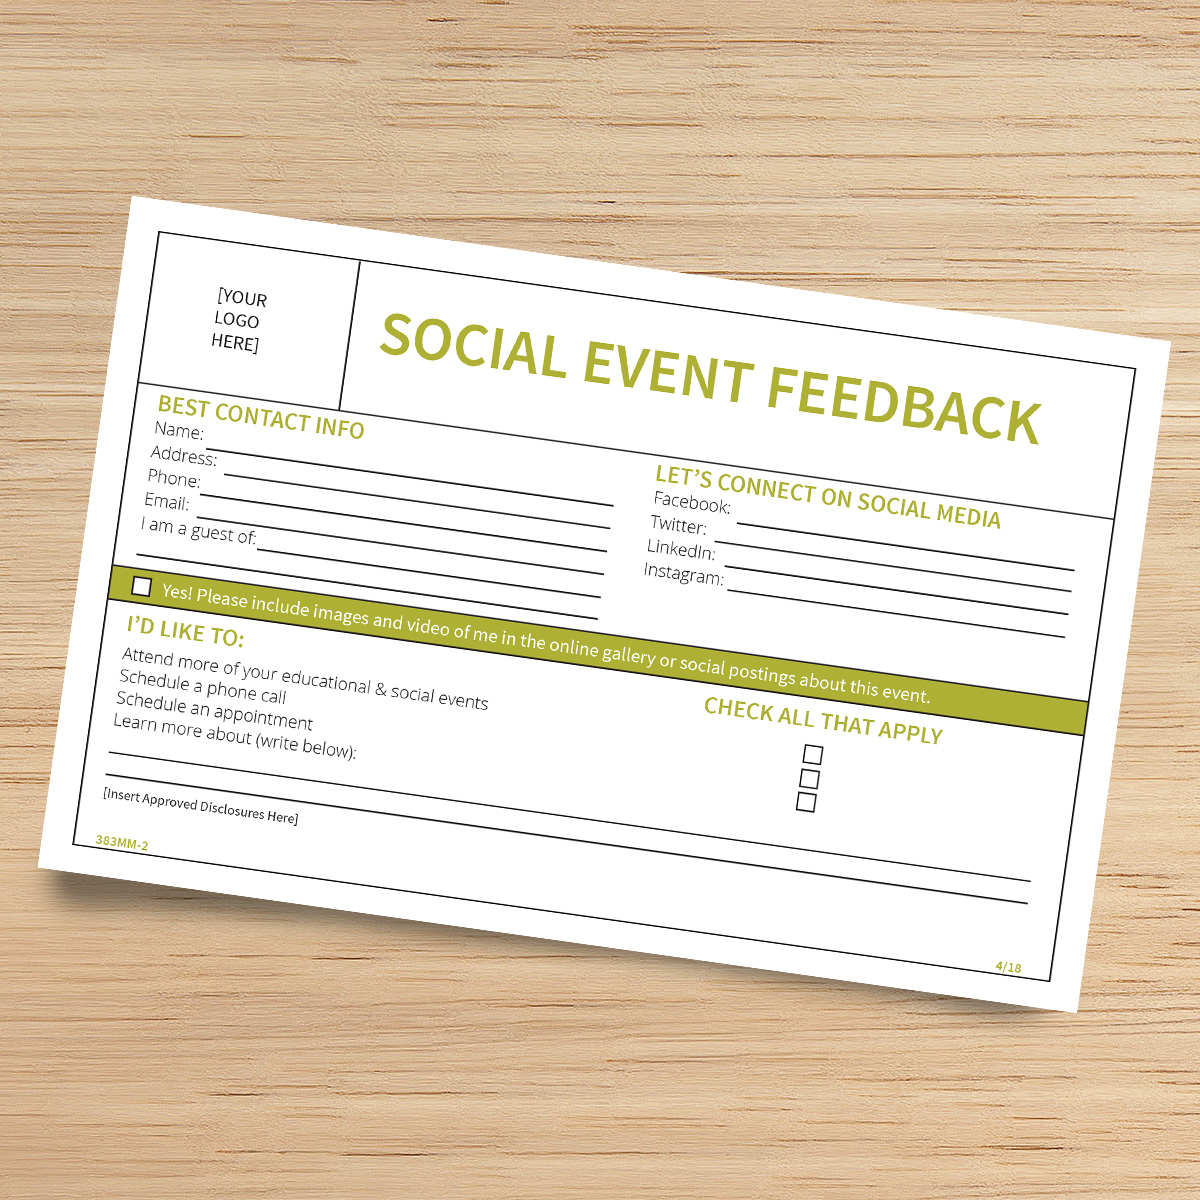 Event Feedback Form | Social Event Feedback Form Midland National